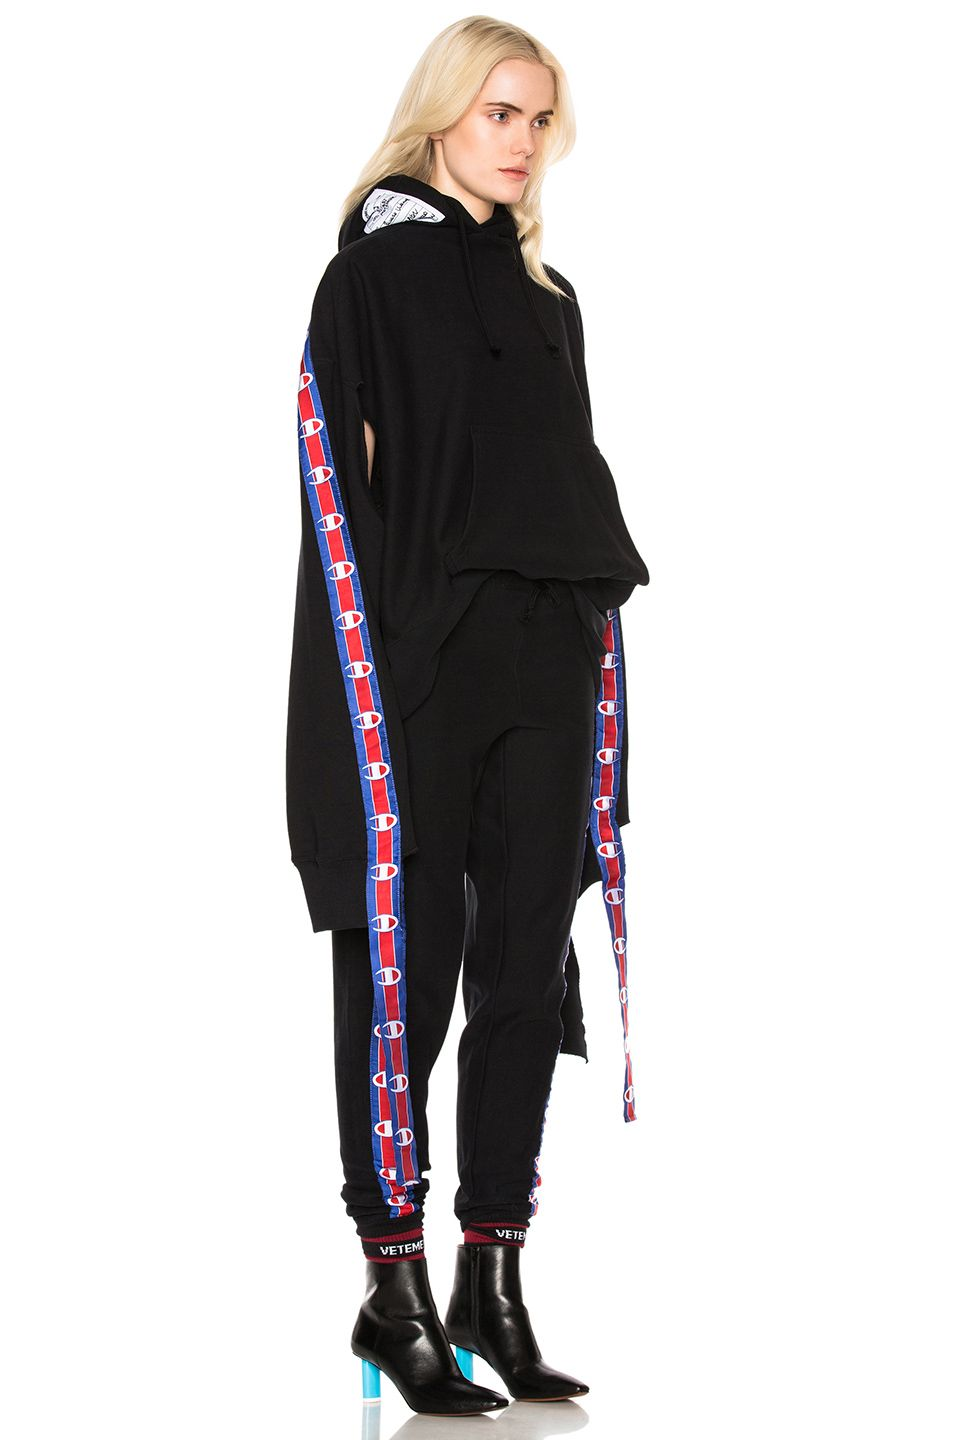 addbc3b64044 Image 3 of VETEMENTS x Champion In Progress Hoodie with Tape in Black